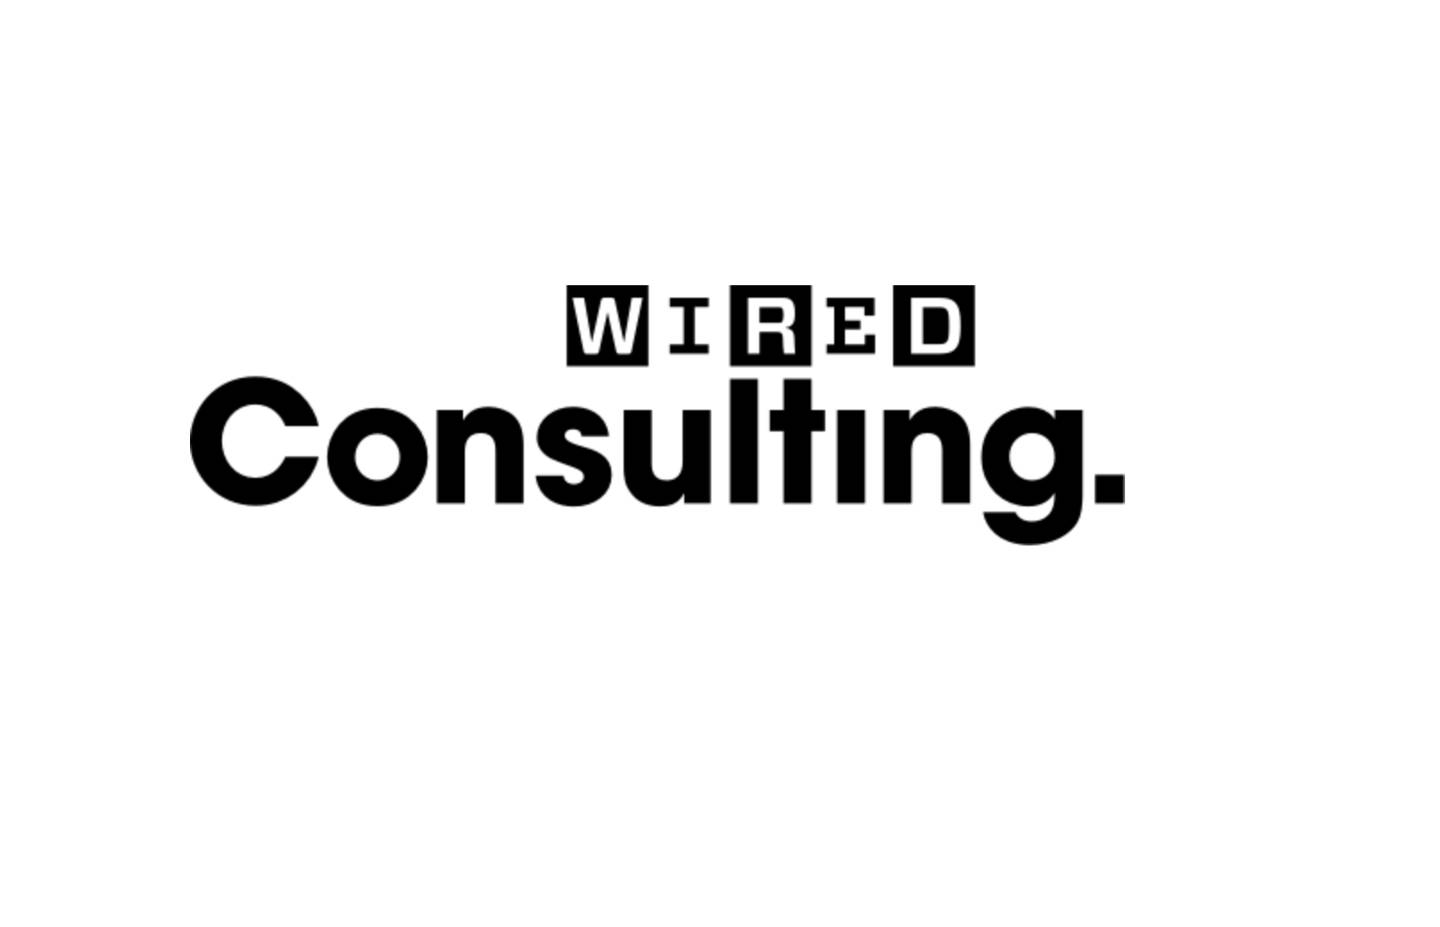 WIRED Consulting | WIRED UK